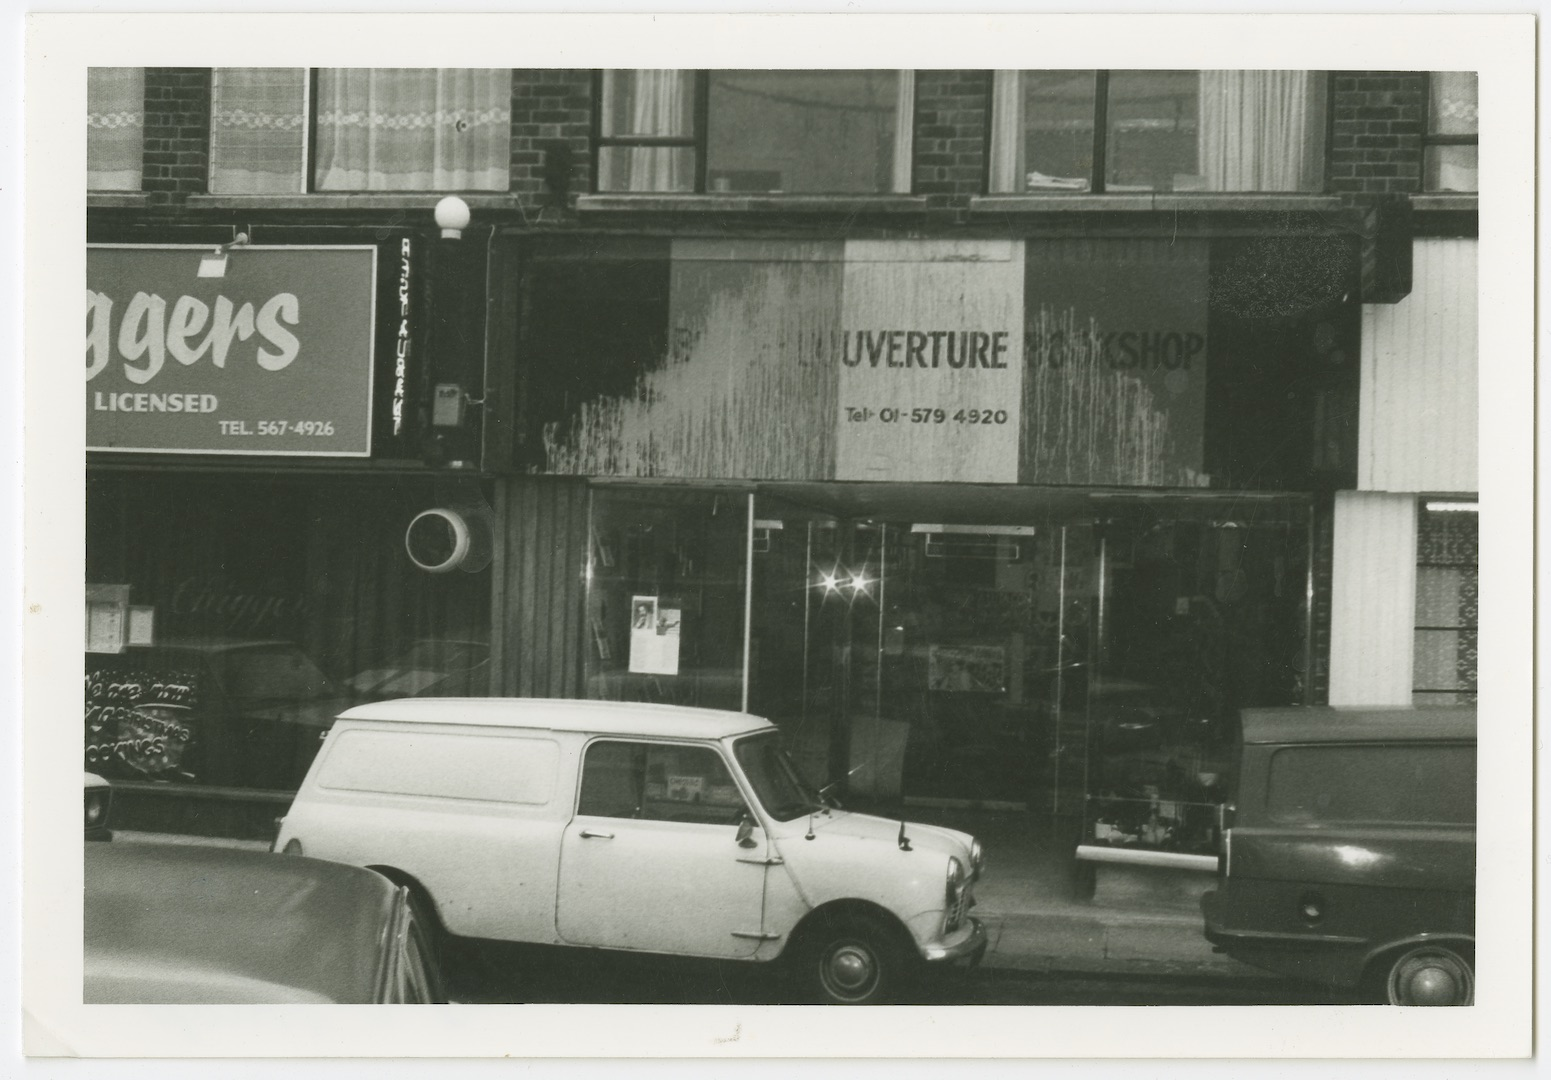 07 Racist Attack on Bogle L'Ouverture Bookshop. c1970s. Huntley Archives at London Metropolitan Arch